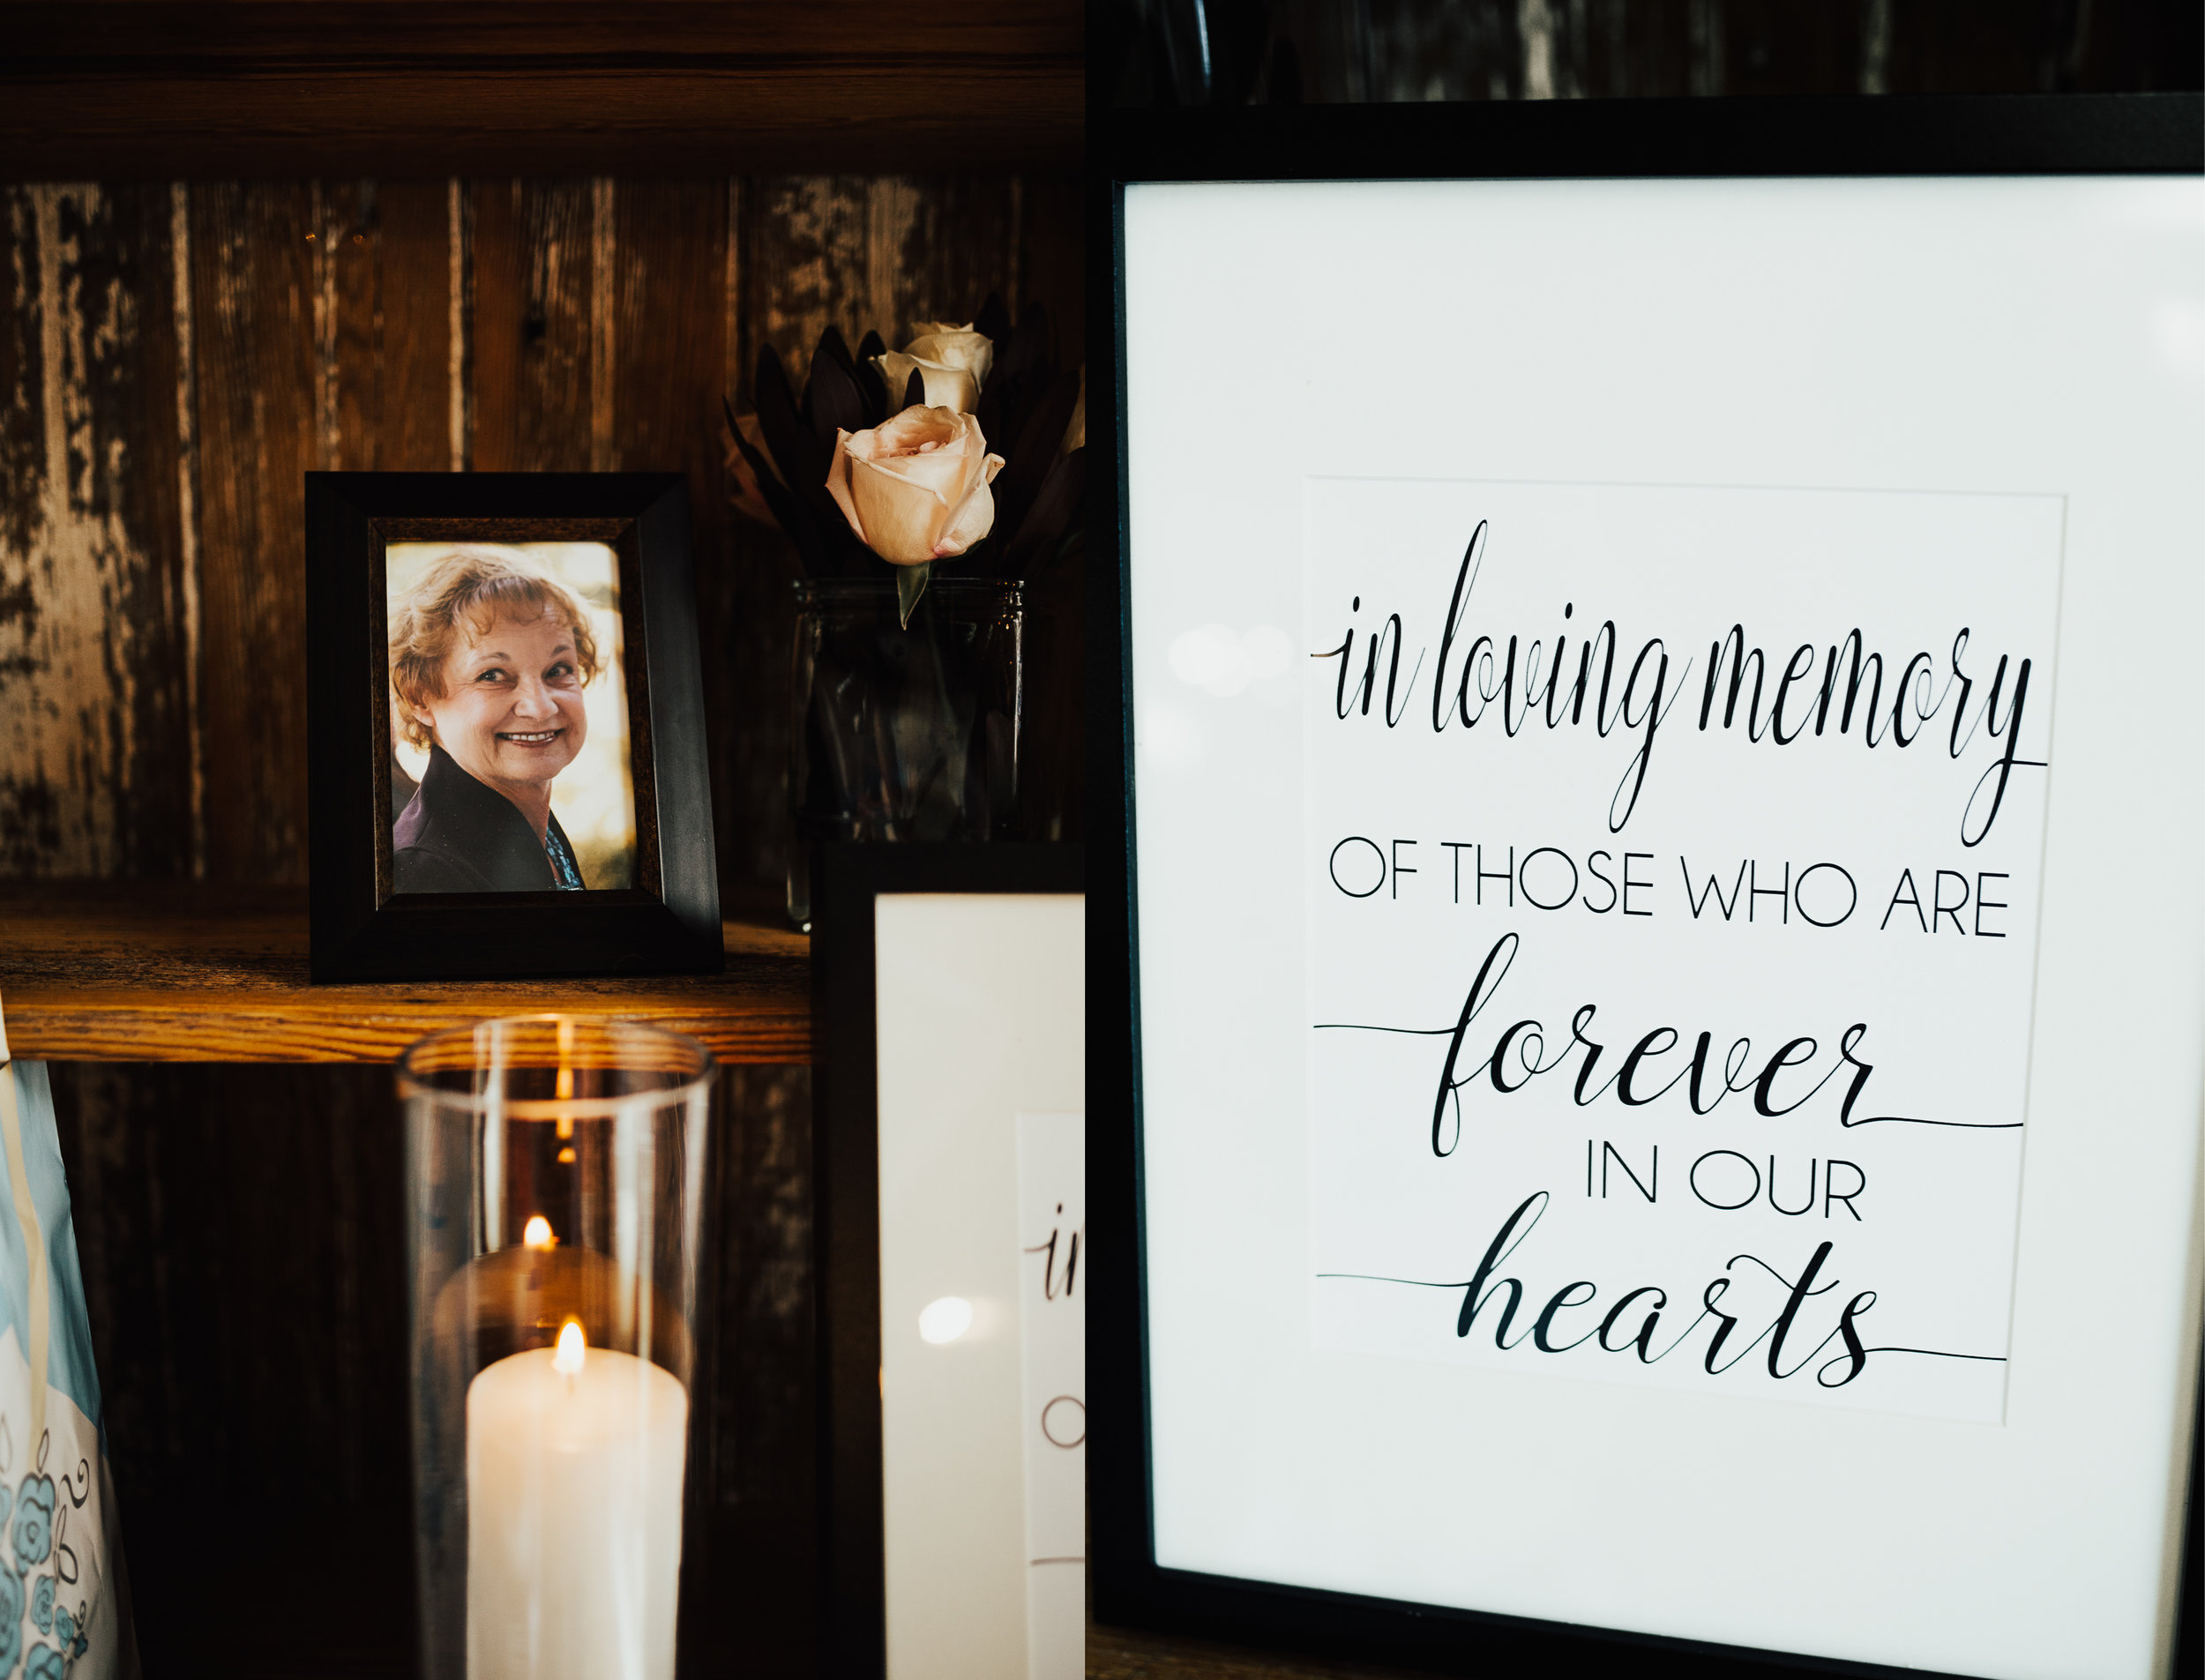 Annie's mom wasn't able to be there for her special day physically, but instead was there in spirit.